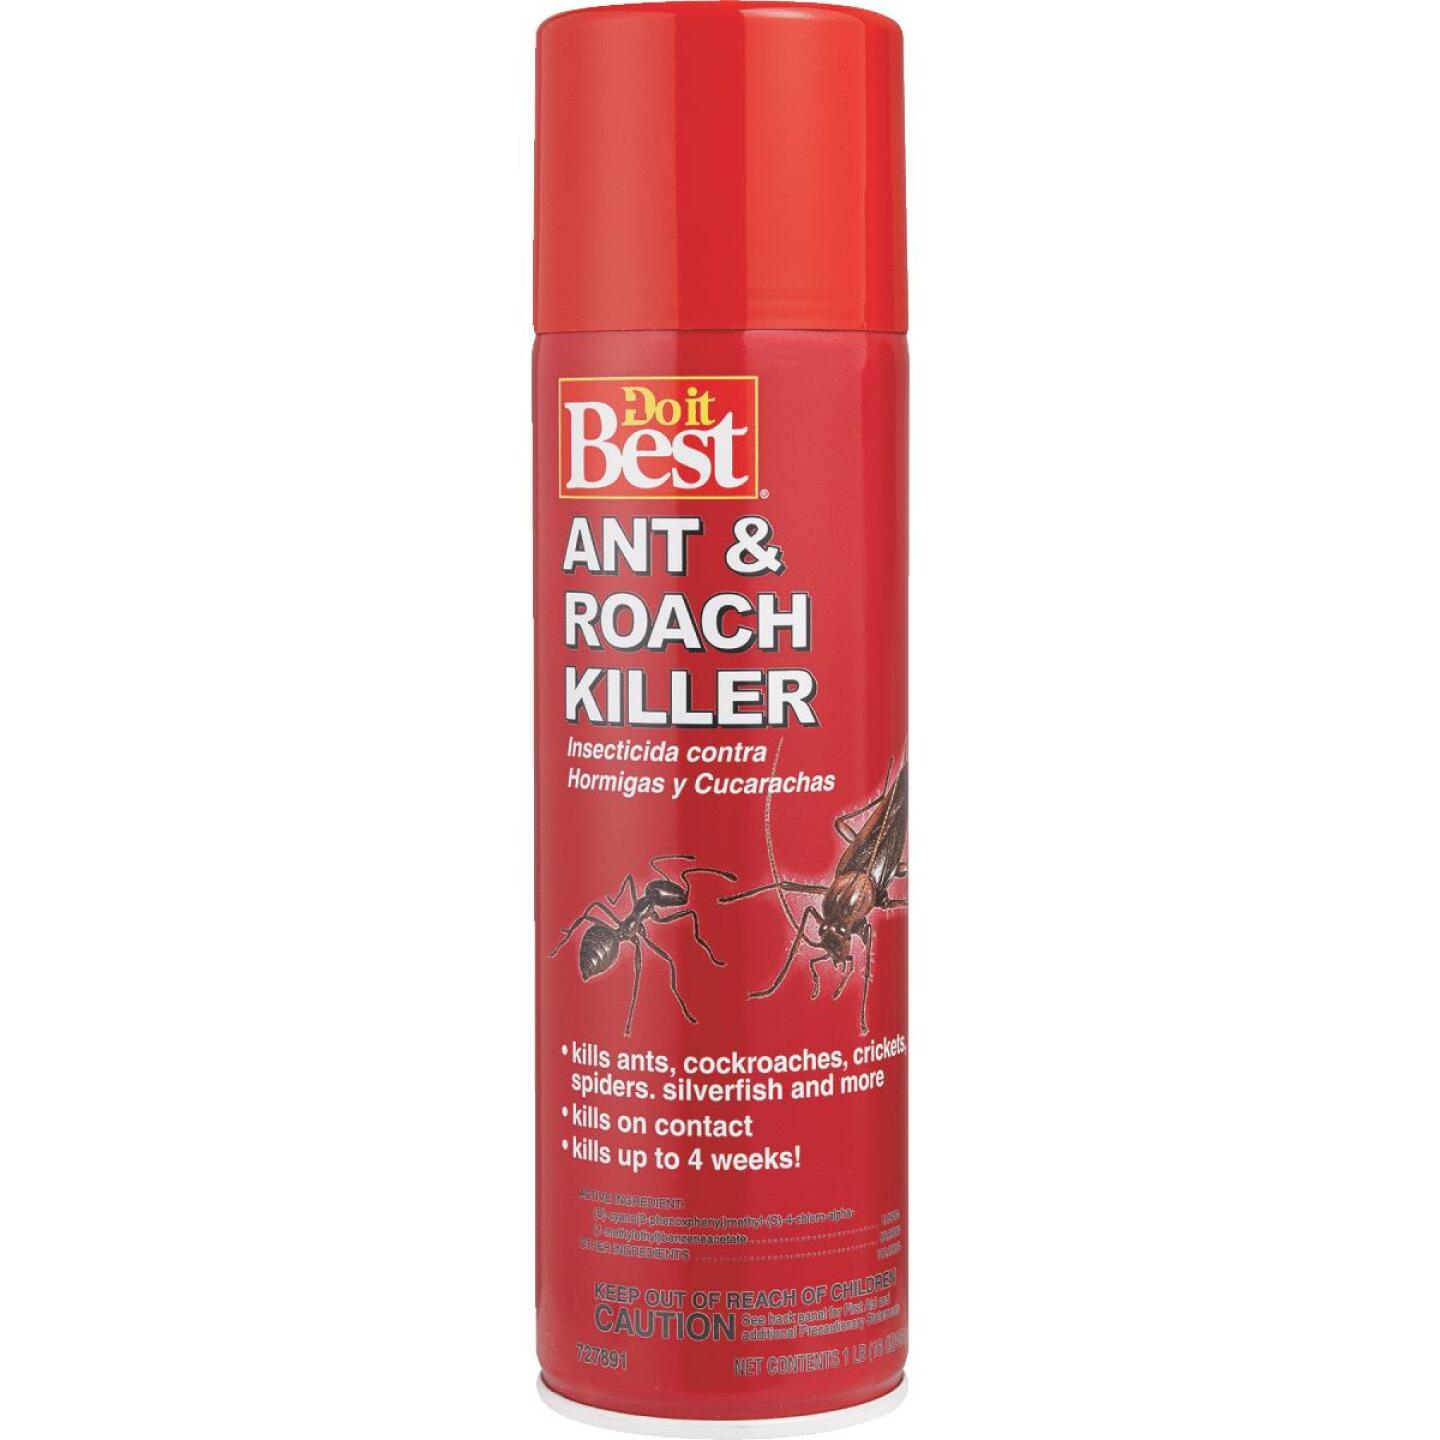 Do it Best 16 Oz. Aerosol Spray Ant & Roach Killer Image 1